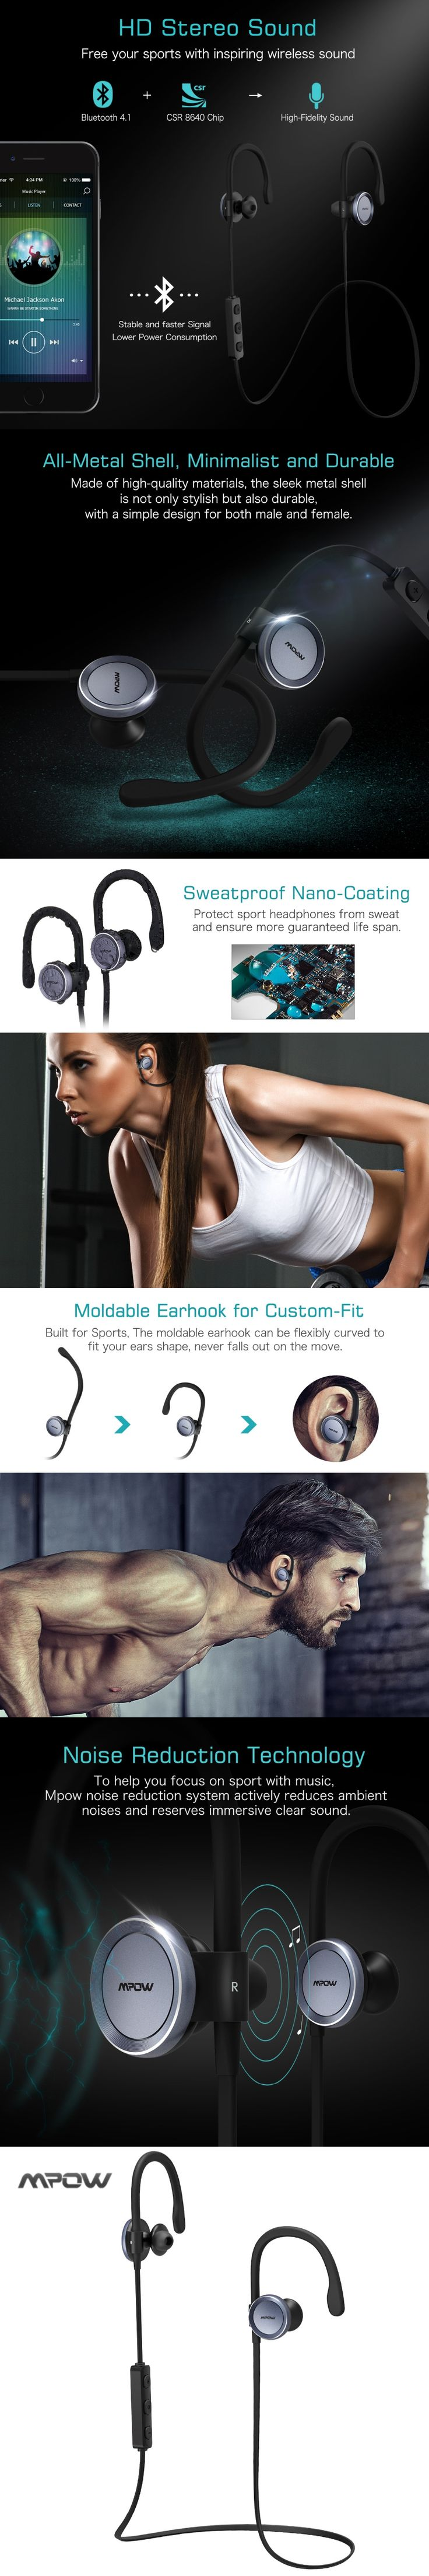 Mpow Goshawk Wireless Noise Cancelling Headphones Sports Headset Sweatproof Running Gym Exercise Headphone, Bluetooth 4.1